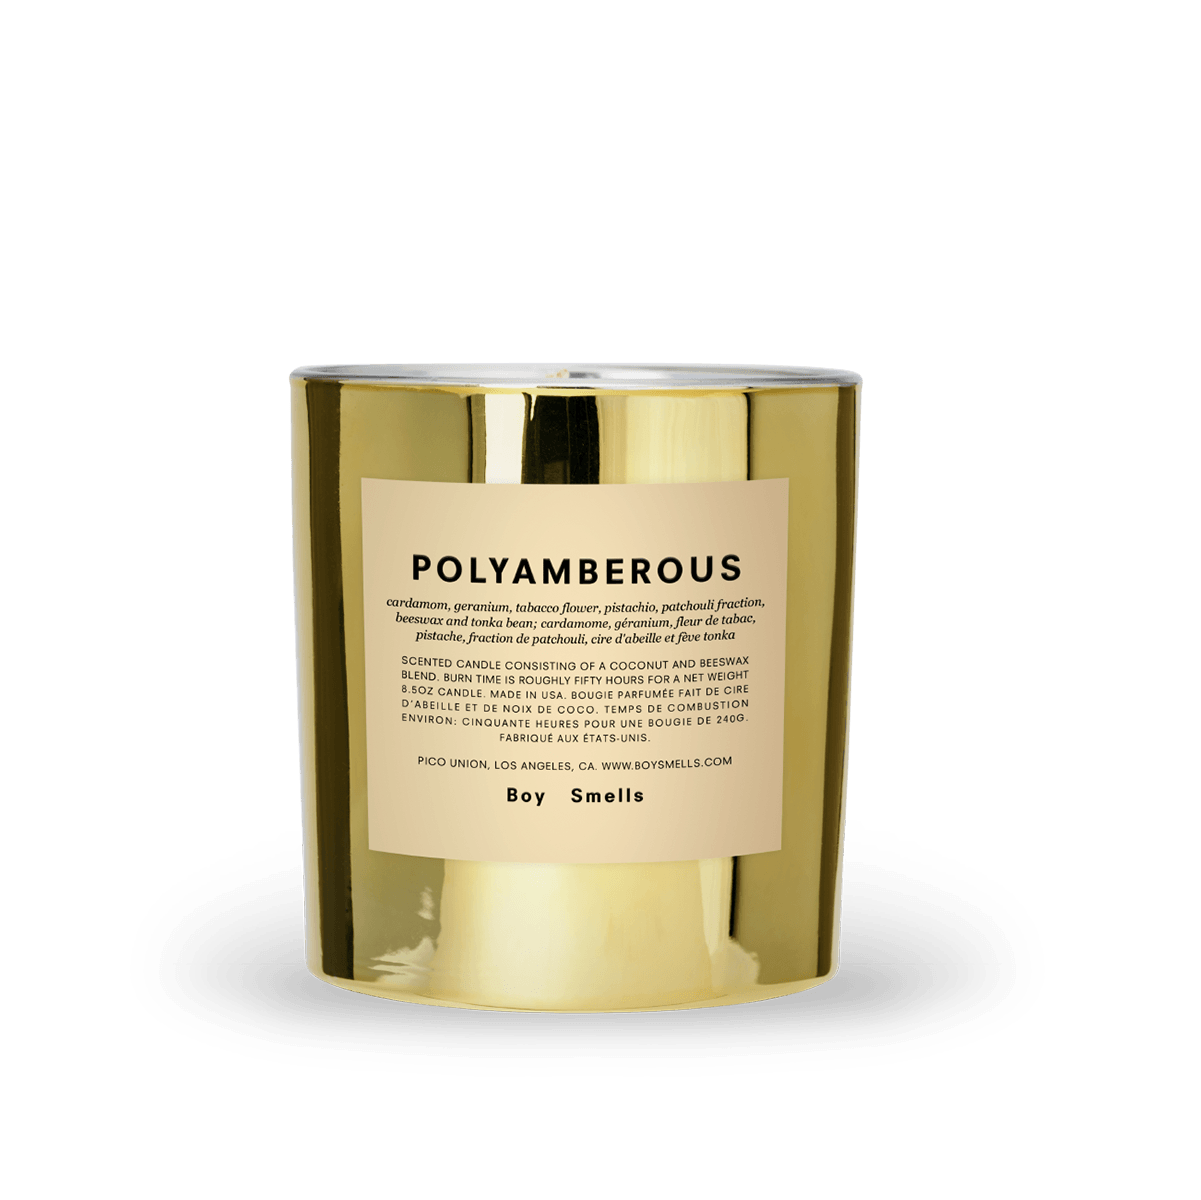 Boy Smells POLYAMBEROUS / Neighborhood Goods